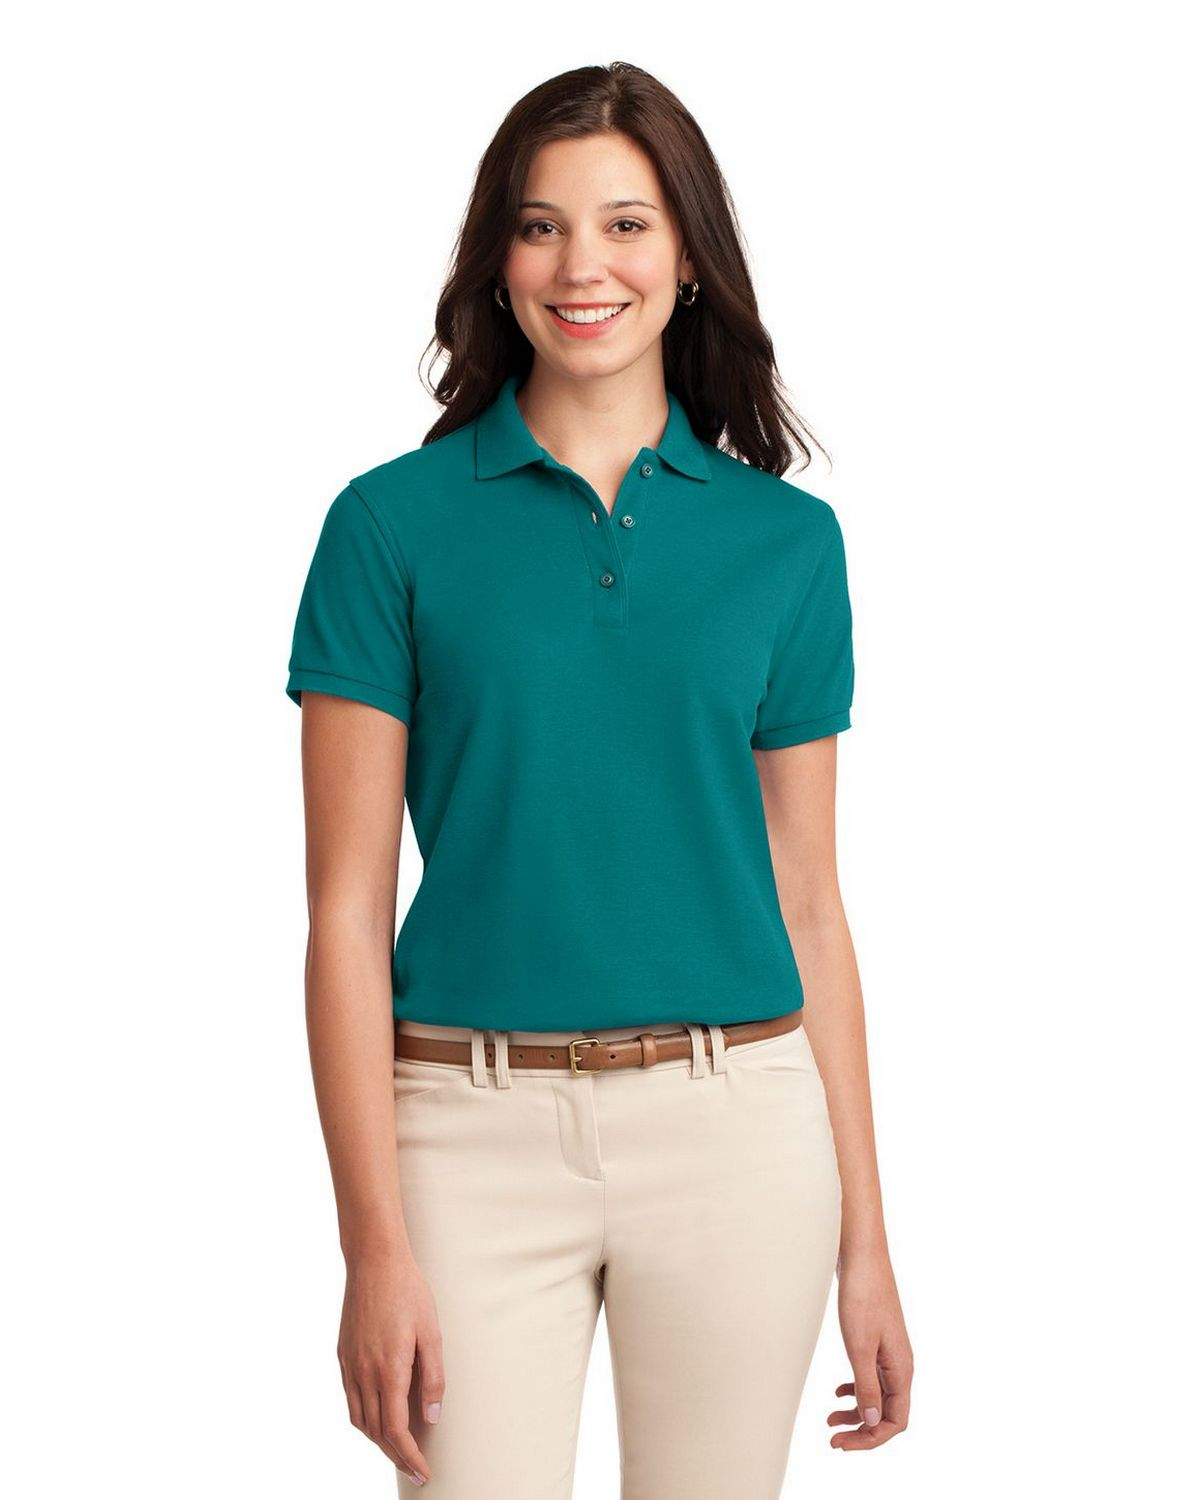 Port Authority L500 Women's Silk Touch Polo - Teal Green - XS #silk